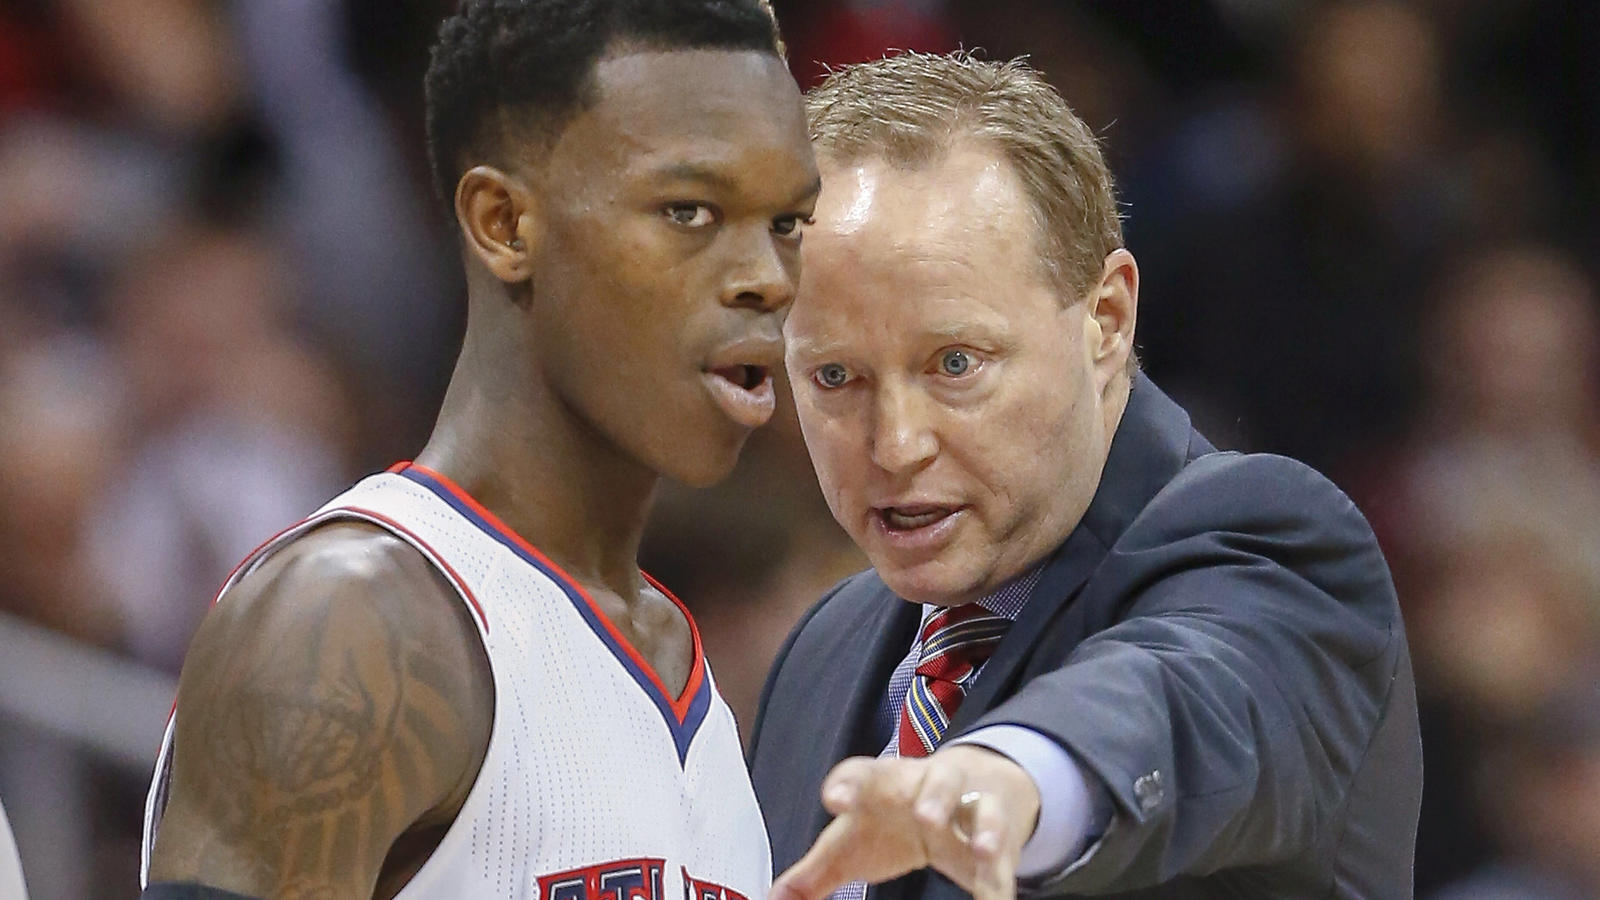 ARCHIV- epa04539110 Atlanta Hawks head coach Mike Budenholzer speaks with Atlanta Hawks guard Dennis Schroeder of Germany during a timeout against the Los Angeles Clippers in the second half of their NBA basketball game at Philips Arena in A